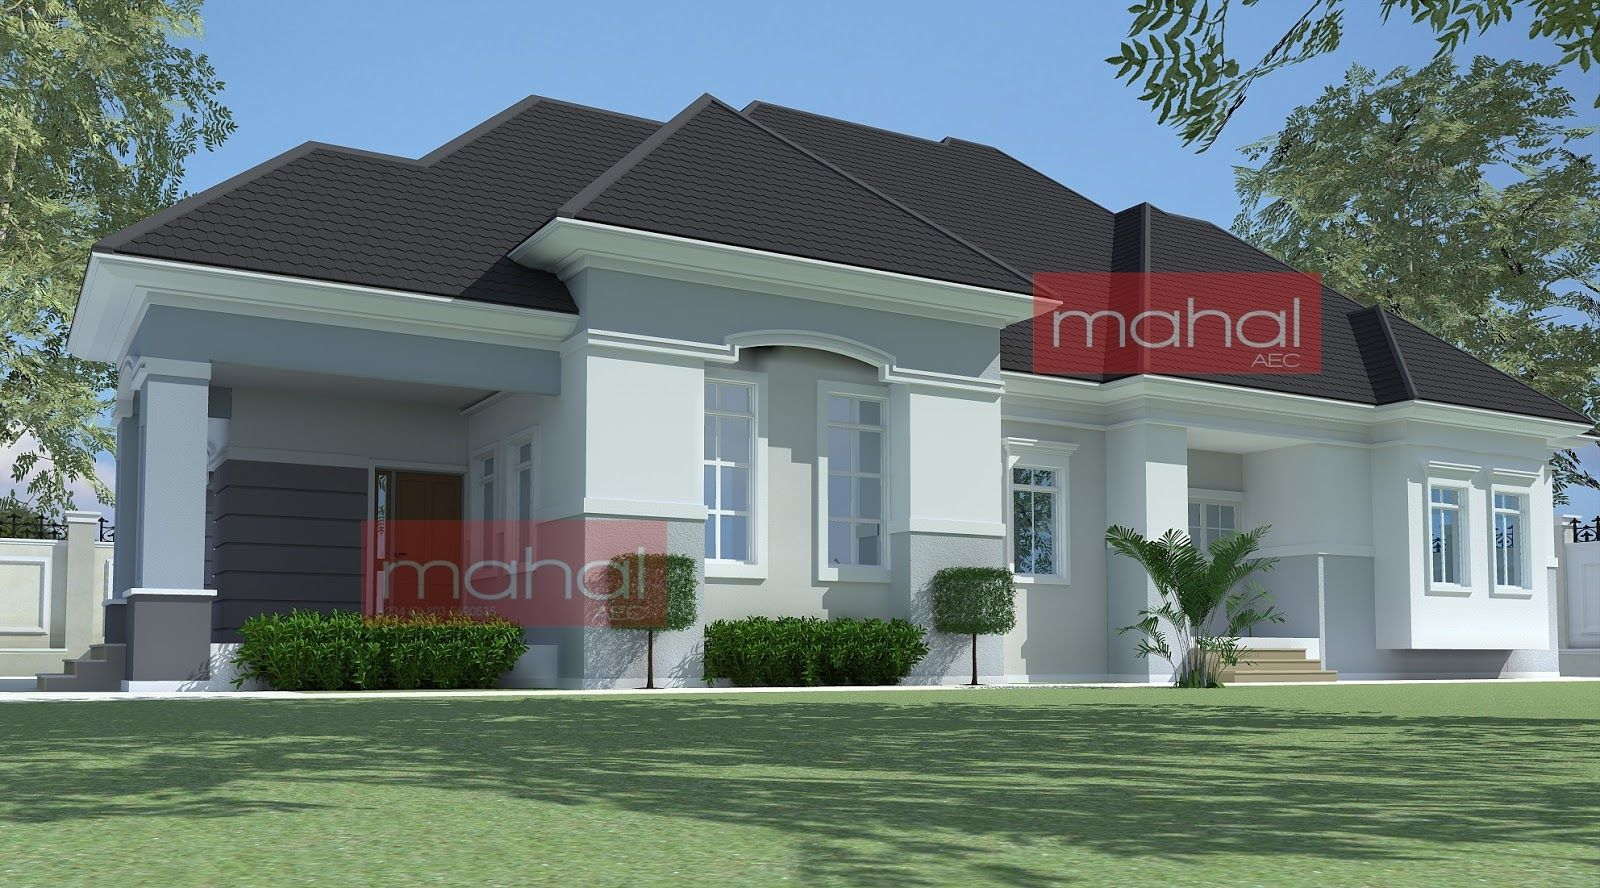 4 bedroom bungalow plan in nigeria 4 bedroom bungalow for Modern bungalow designs and plans